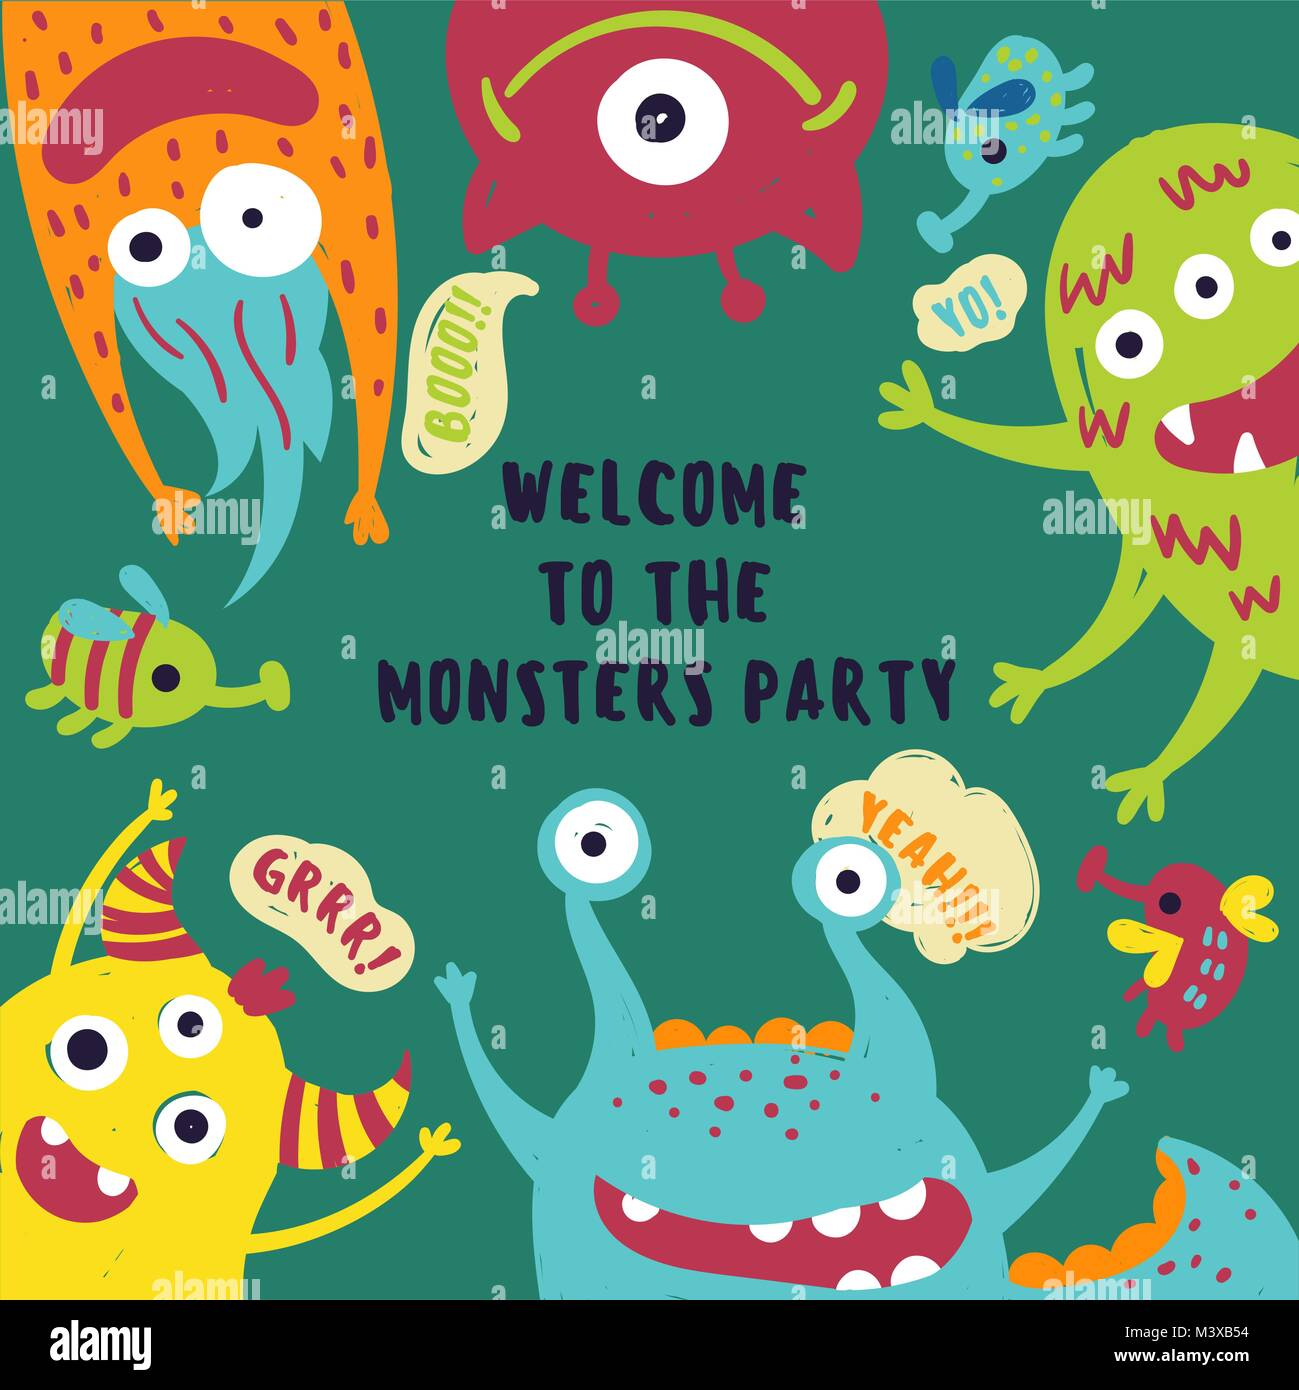 Monster Party Invitation Card With Cute Fluffy Alien Beasts